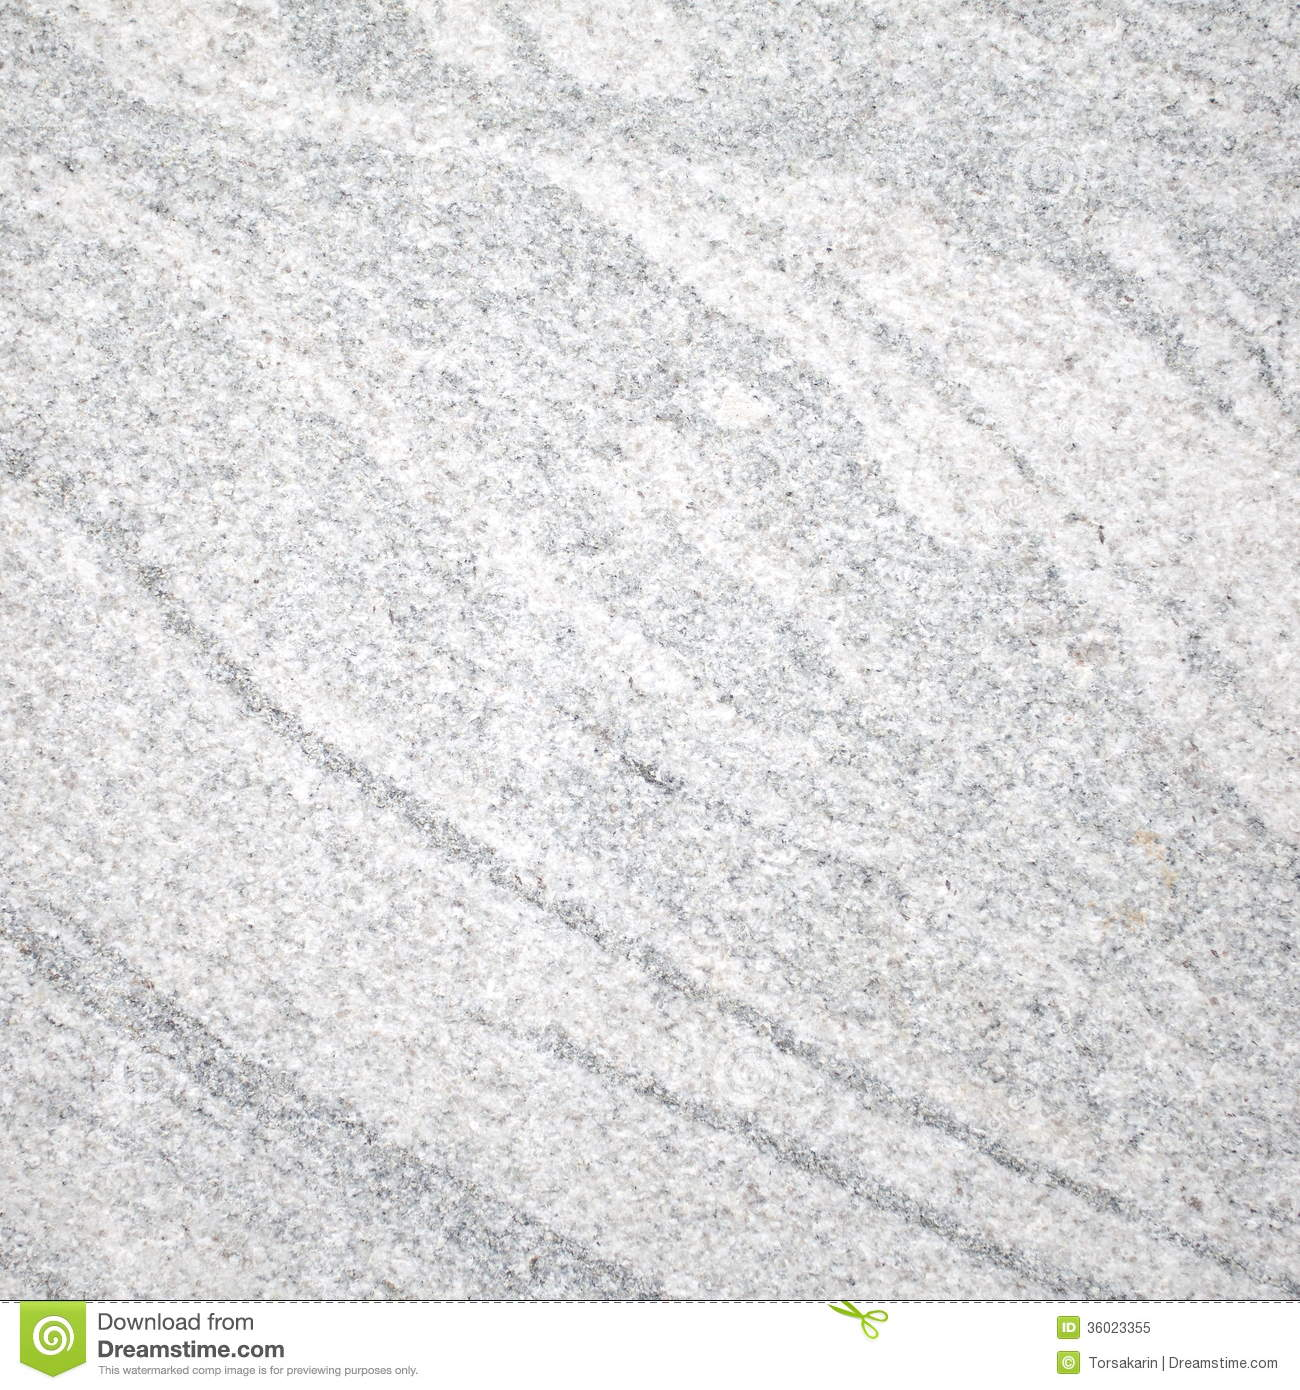 White granite background royalty free stock photo image for Photo de granite